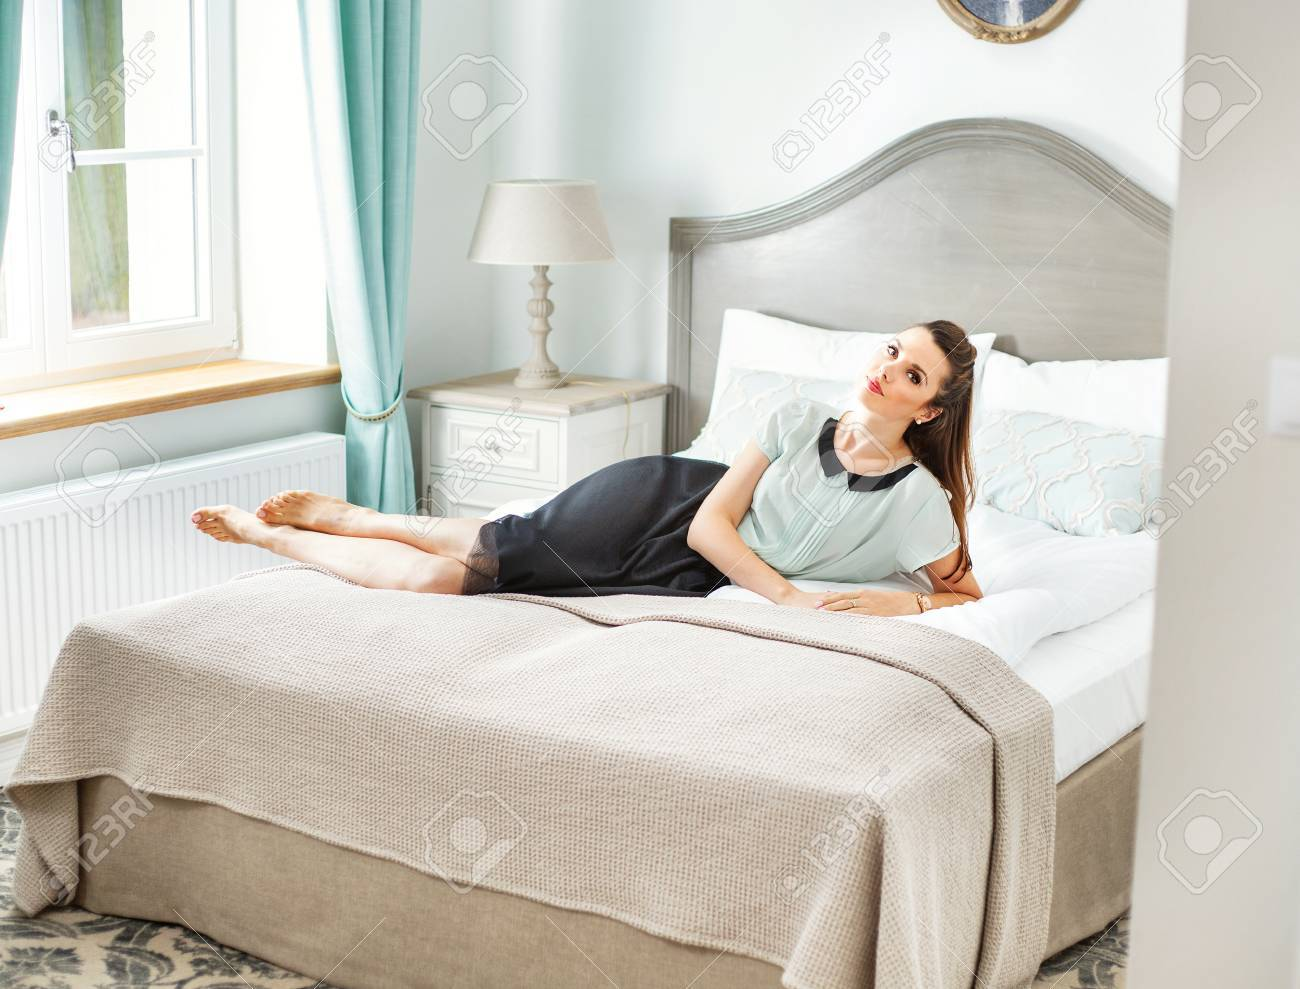 Stylish Woman Lying In The Fancy Bedroom Stock Photo Picture And Royalty Free Image Image 49748887